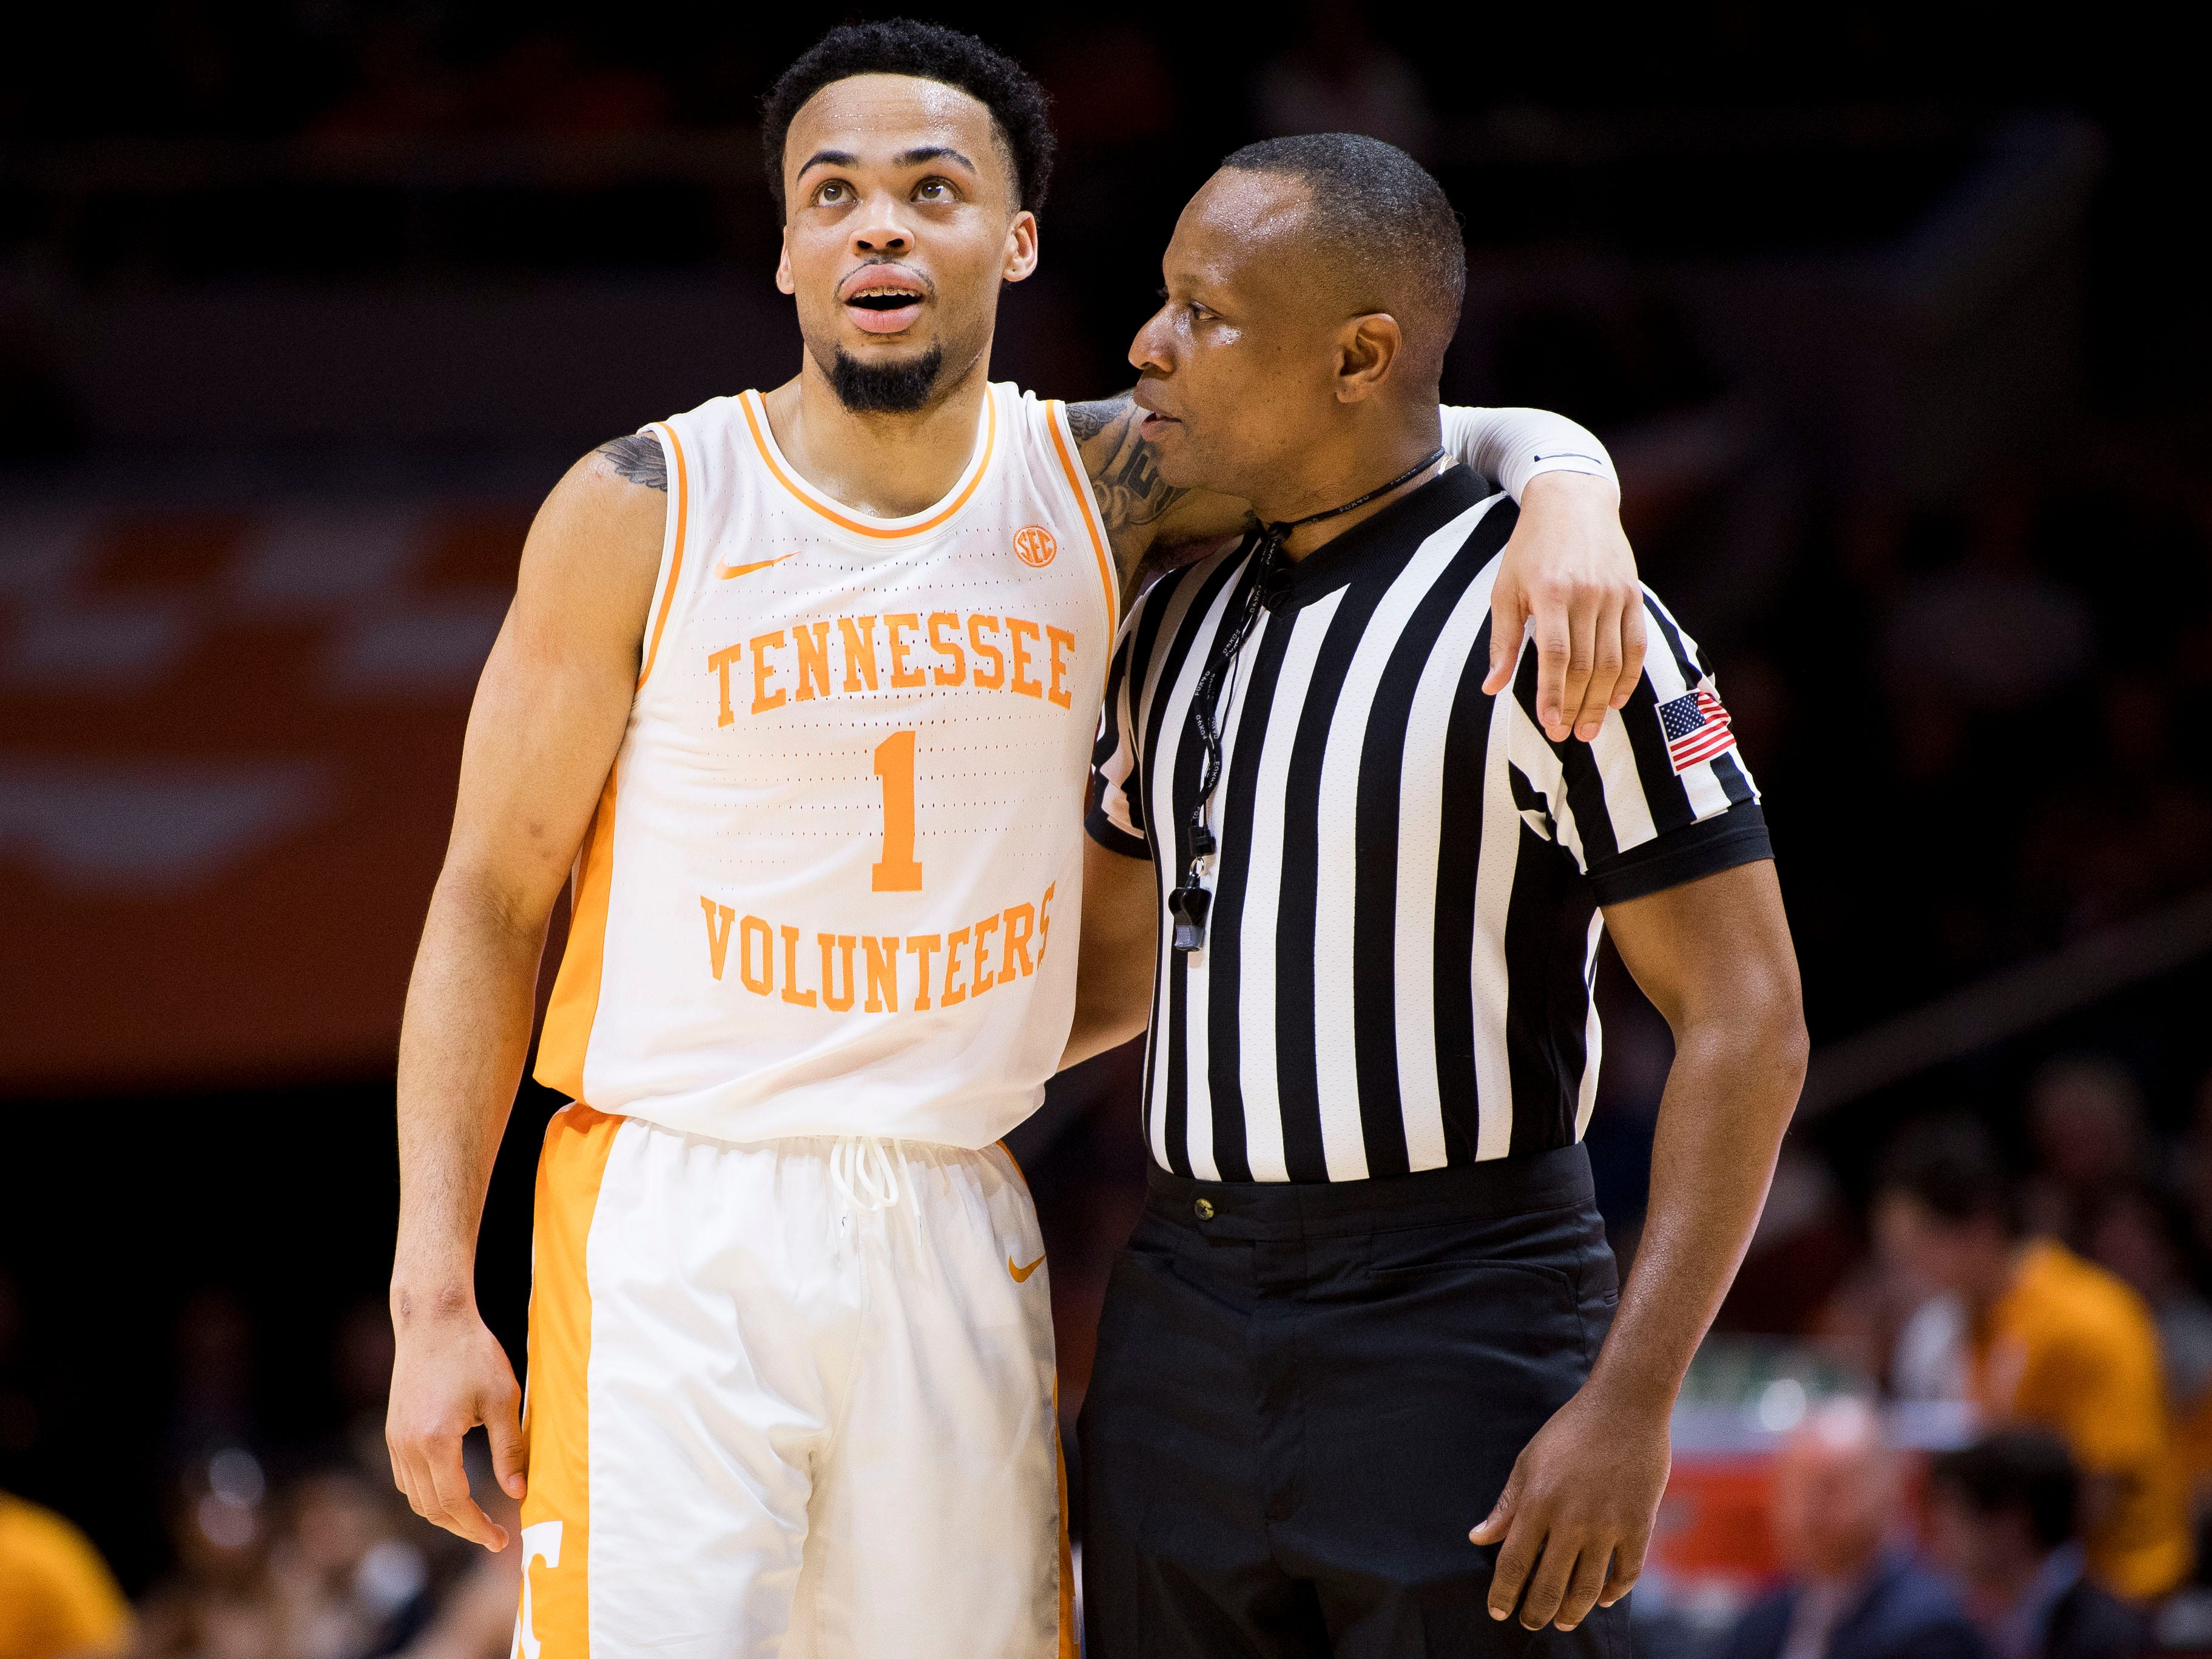 Tennessee guard Lamonte Turner (1) chats with a referee after a foul was called against Turner during Tennessee's home finale against Mississippi State at Thompson-Boling Arena in Knoxville on Tuesday, March 5, 2019.